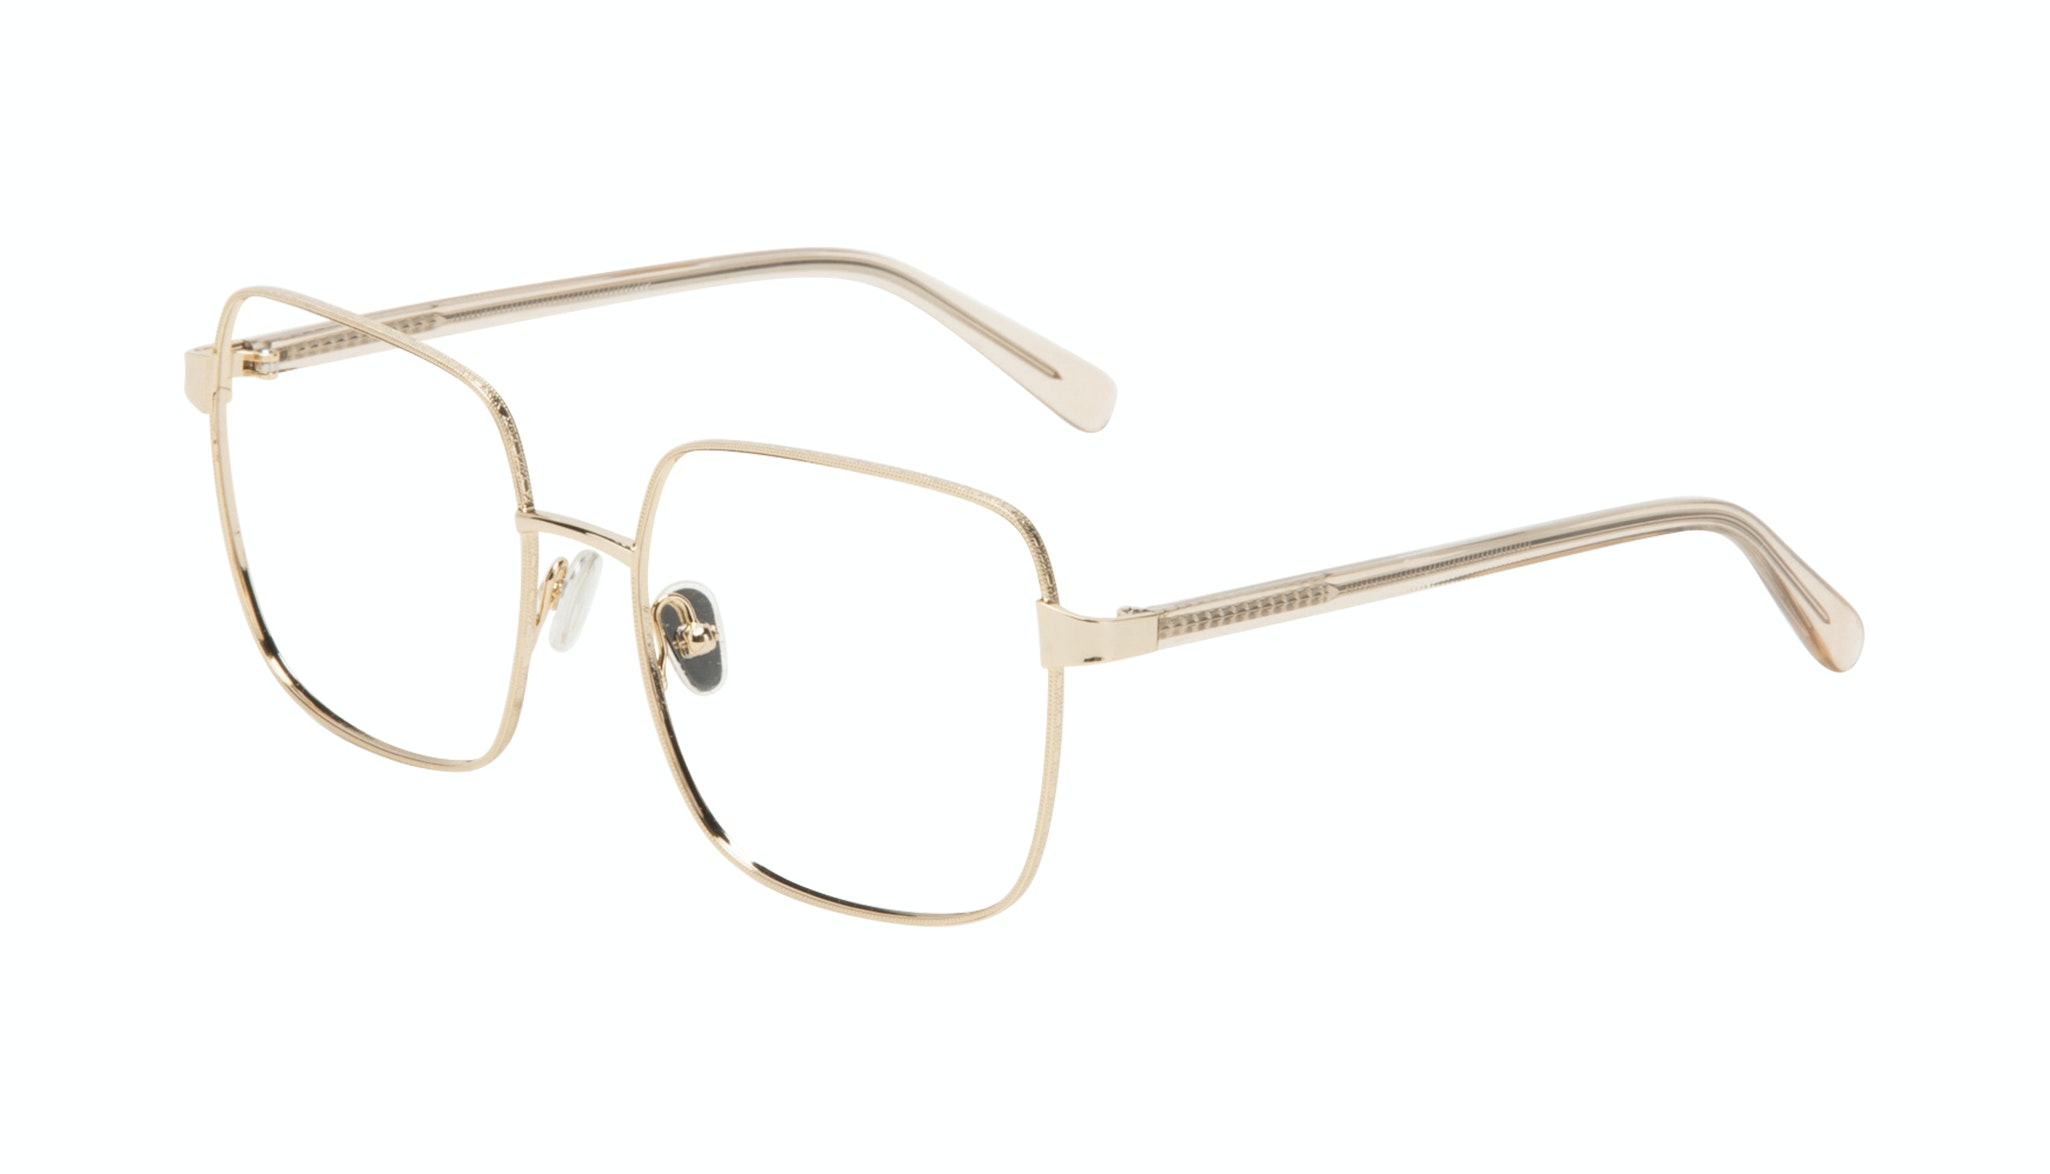 Affordable Fashion Glasses Square Eyeglasses Women Fab Gold Tilt